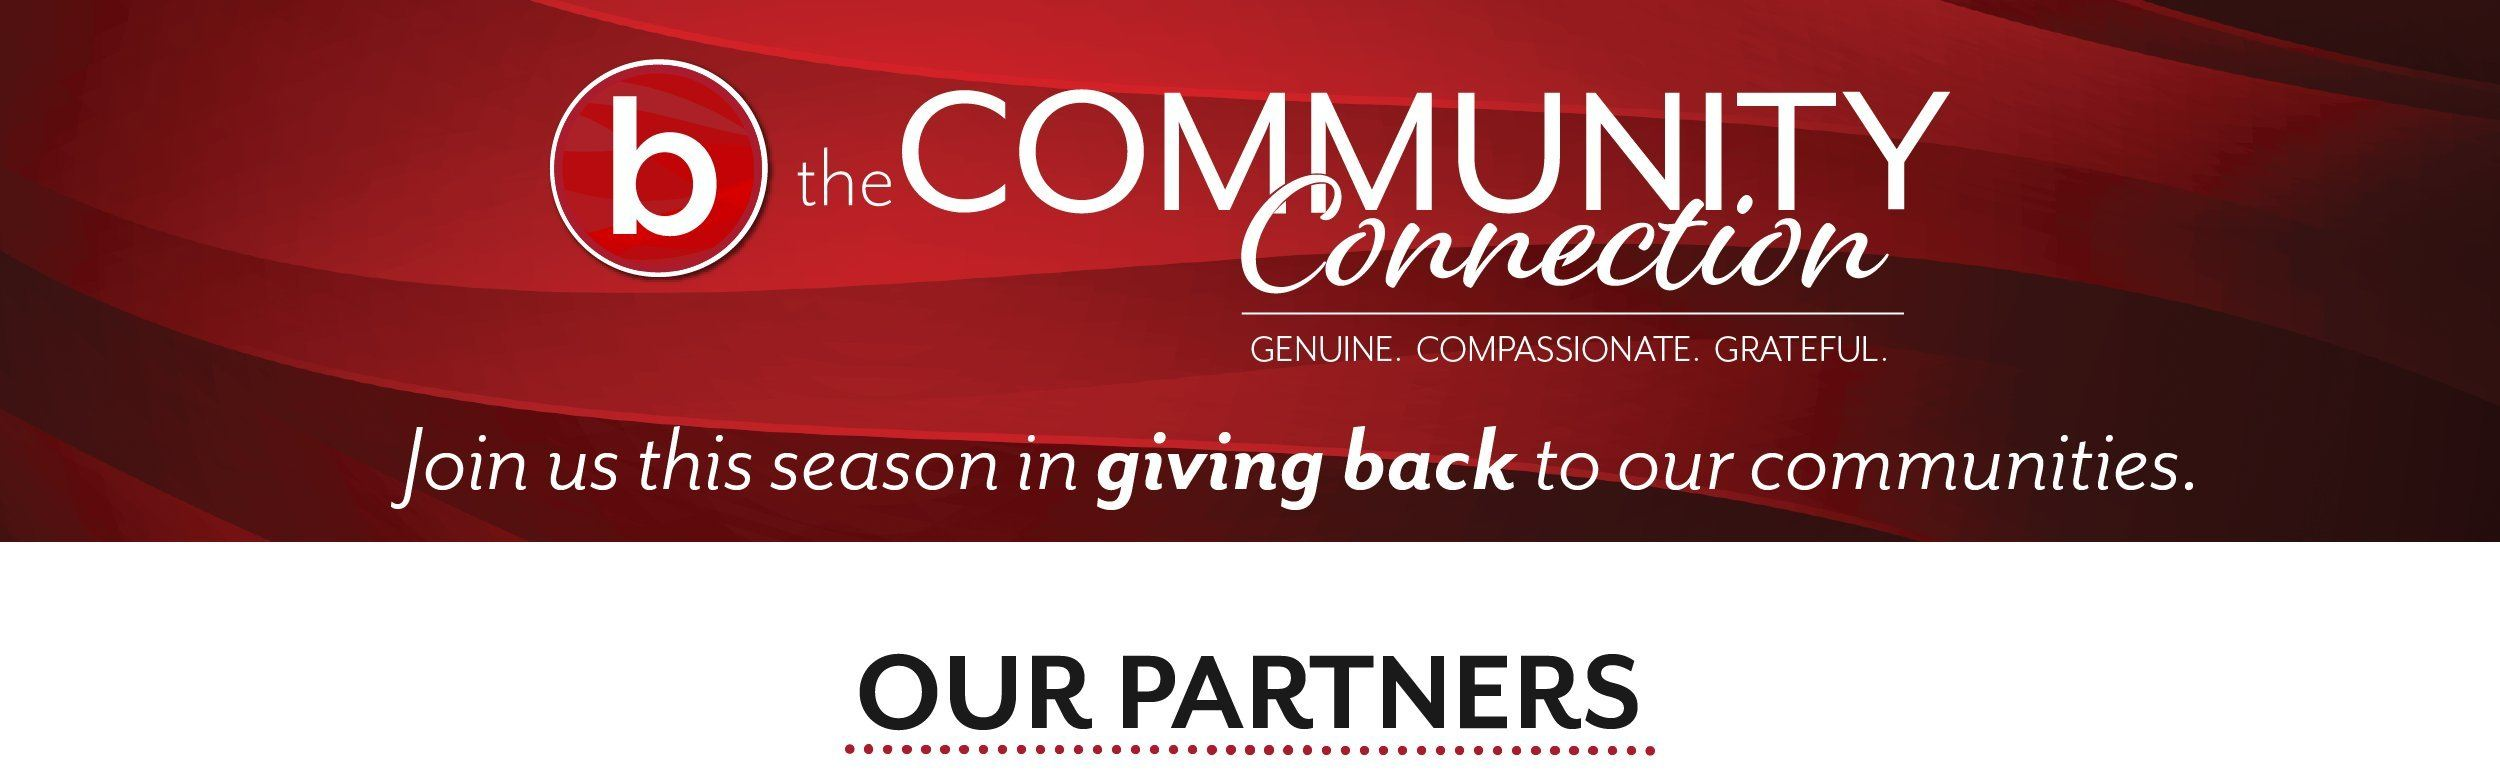 b the Community Connection